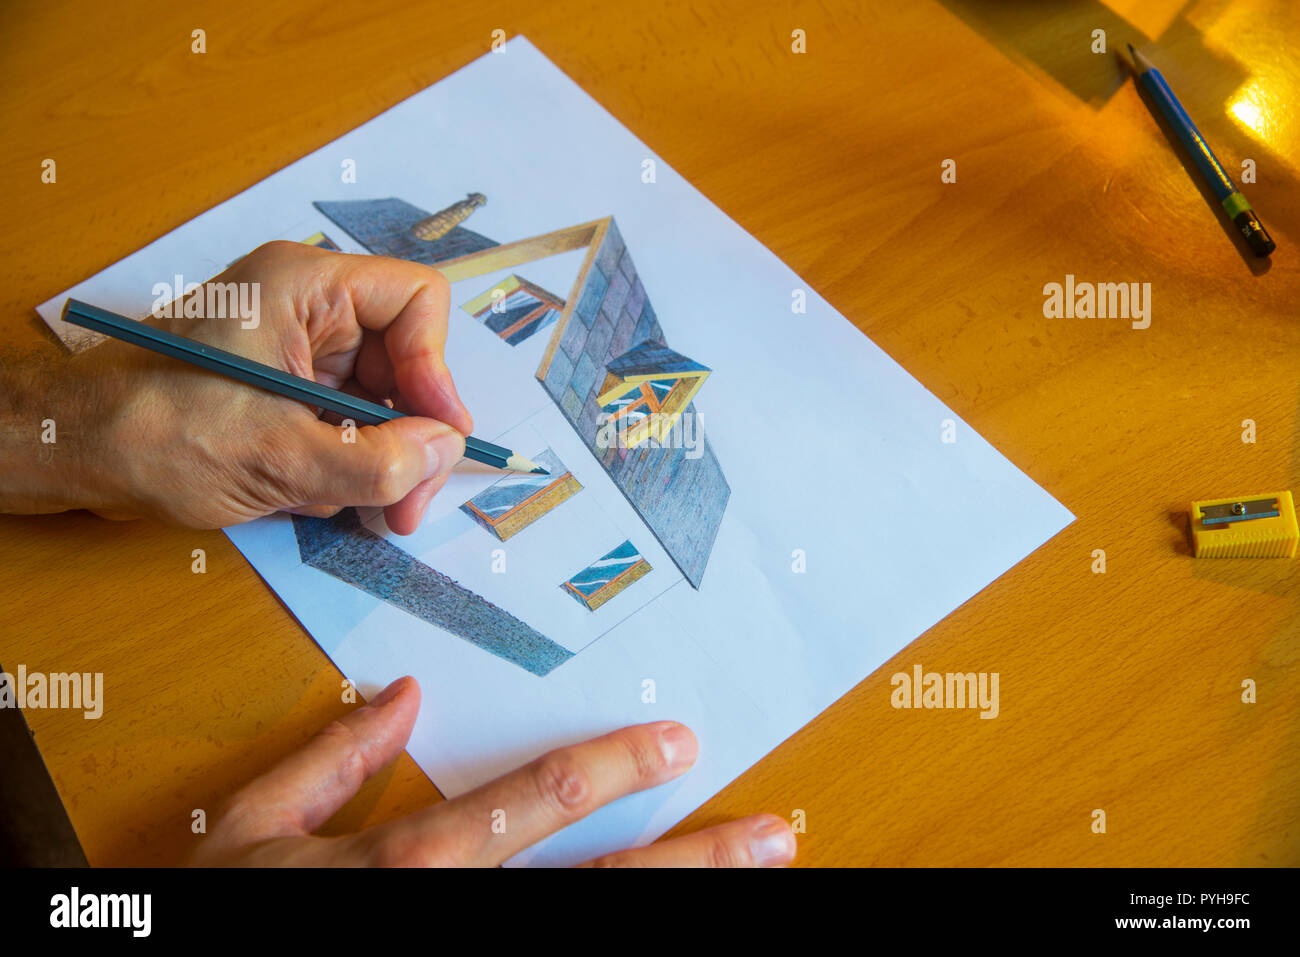 Man drawing a house with color pencils. - Stock Image